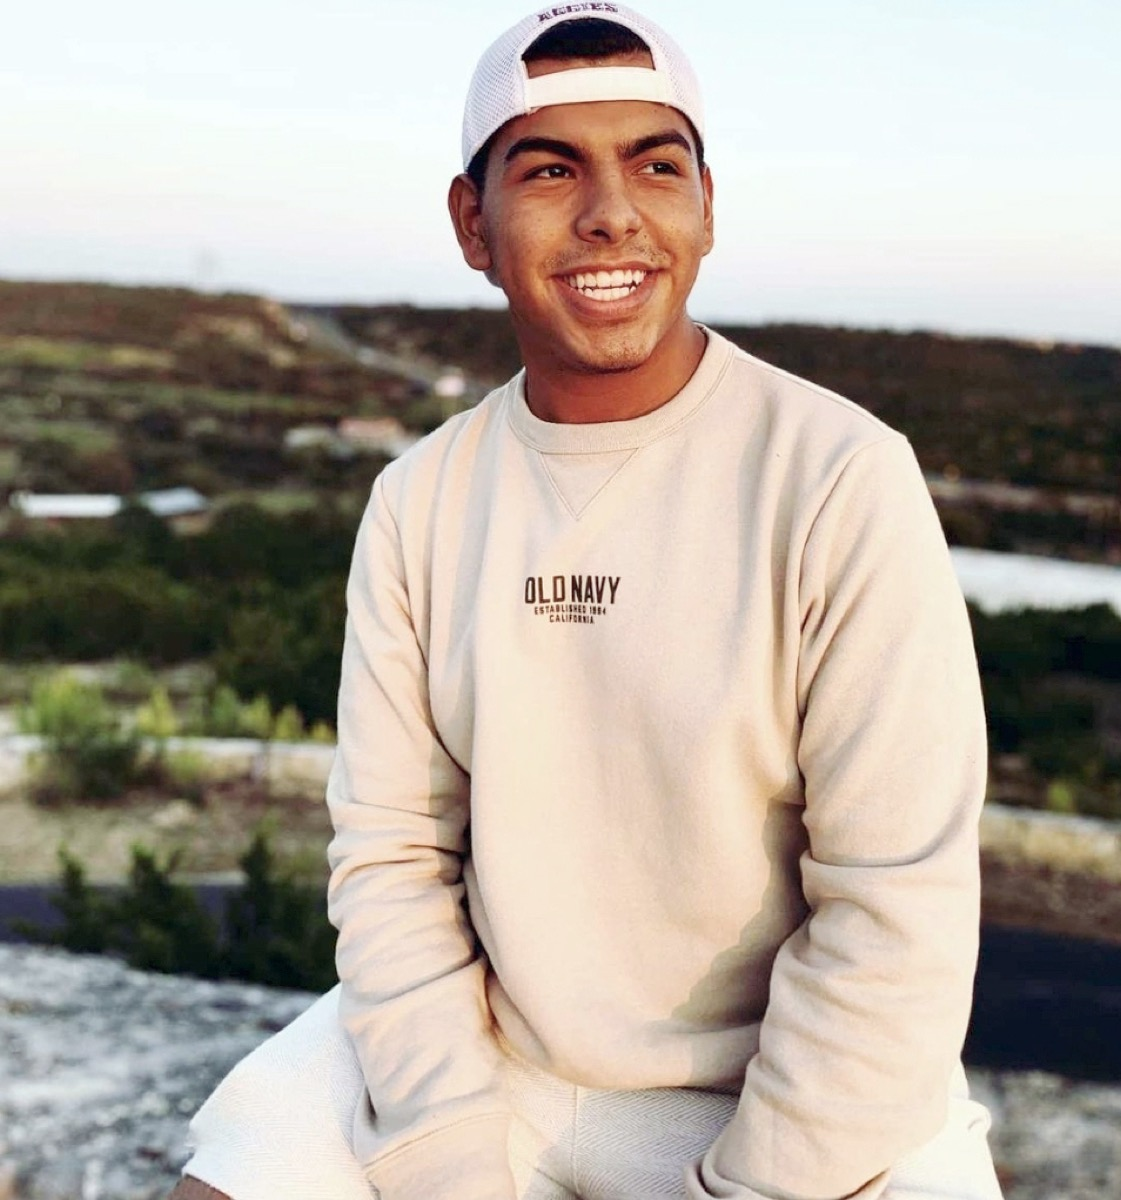 a young hispanic man in a white cap and cream sweater smiles sitting outside